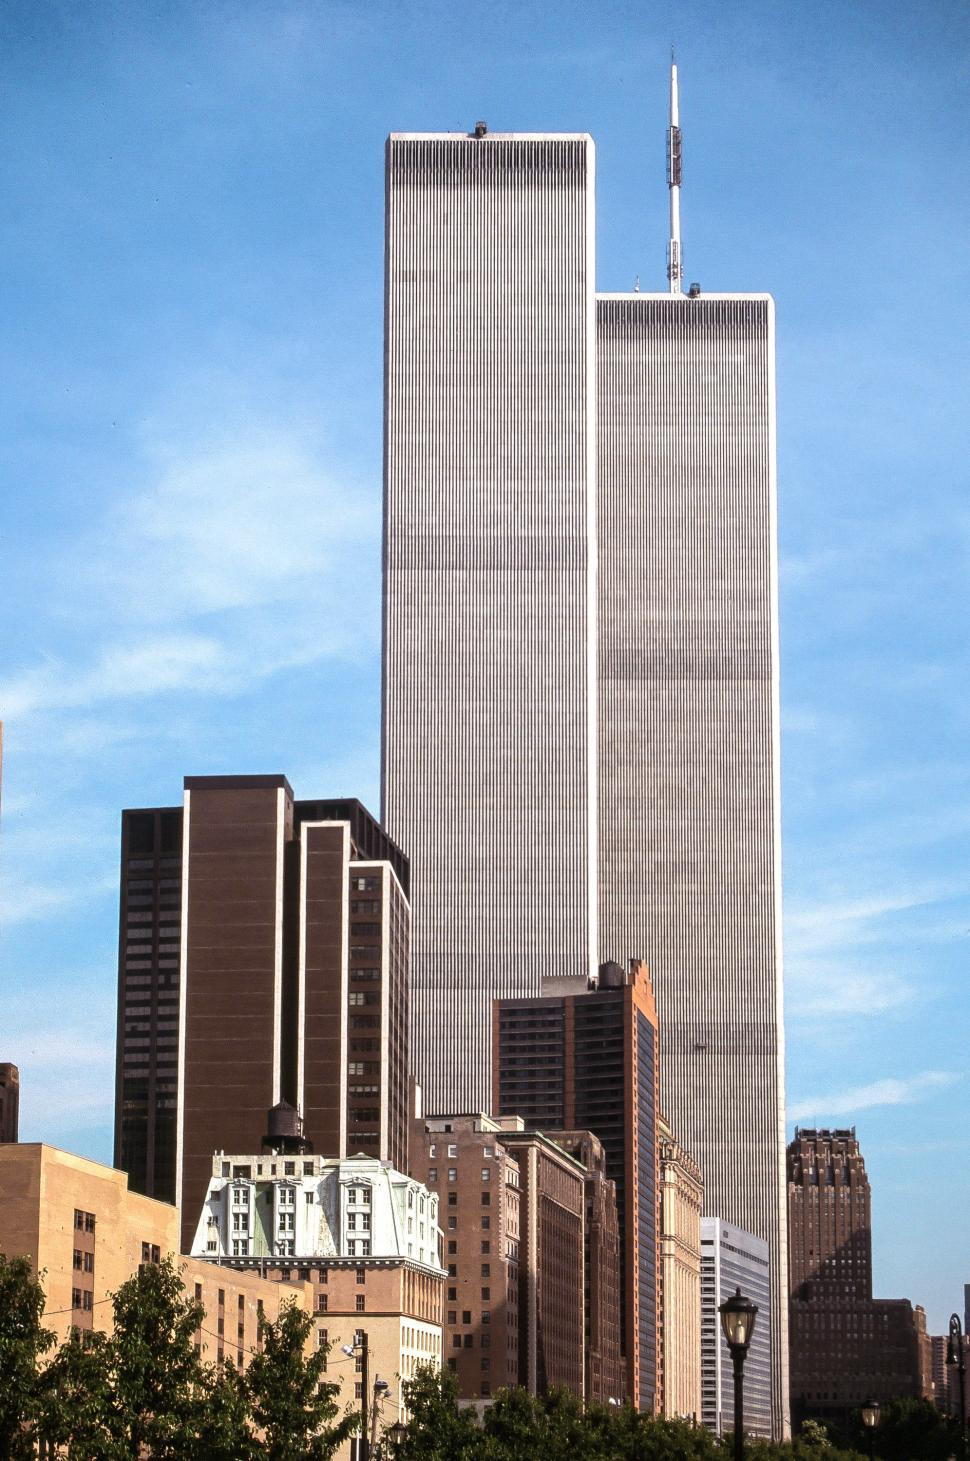 Download Free Stock HD Photo of World Trade Center, New York City Online